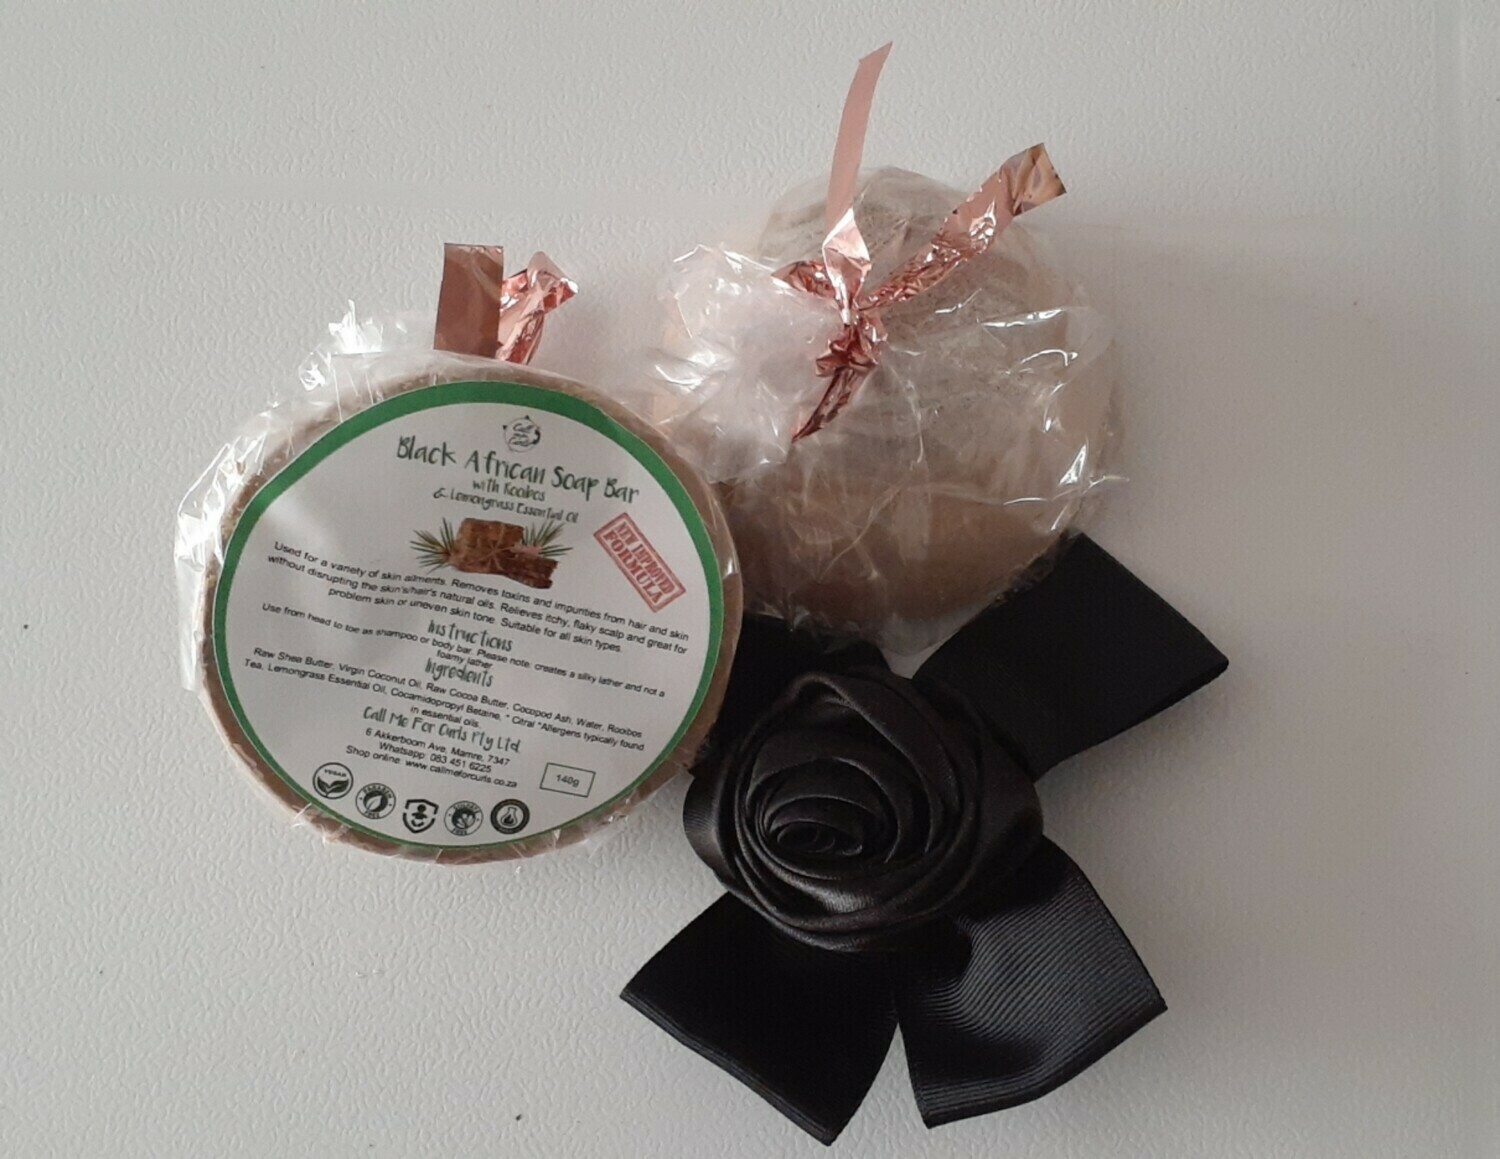 ​Black African Soap Bar with Rooibos and Lemongrass Oil